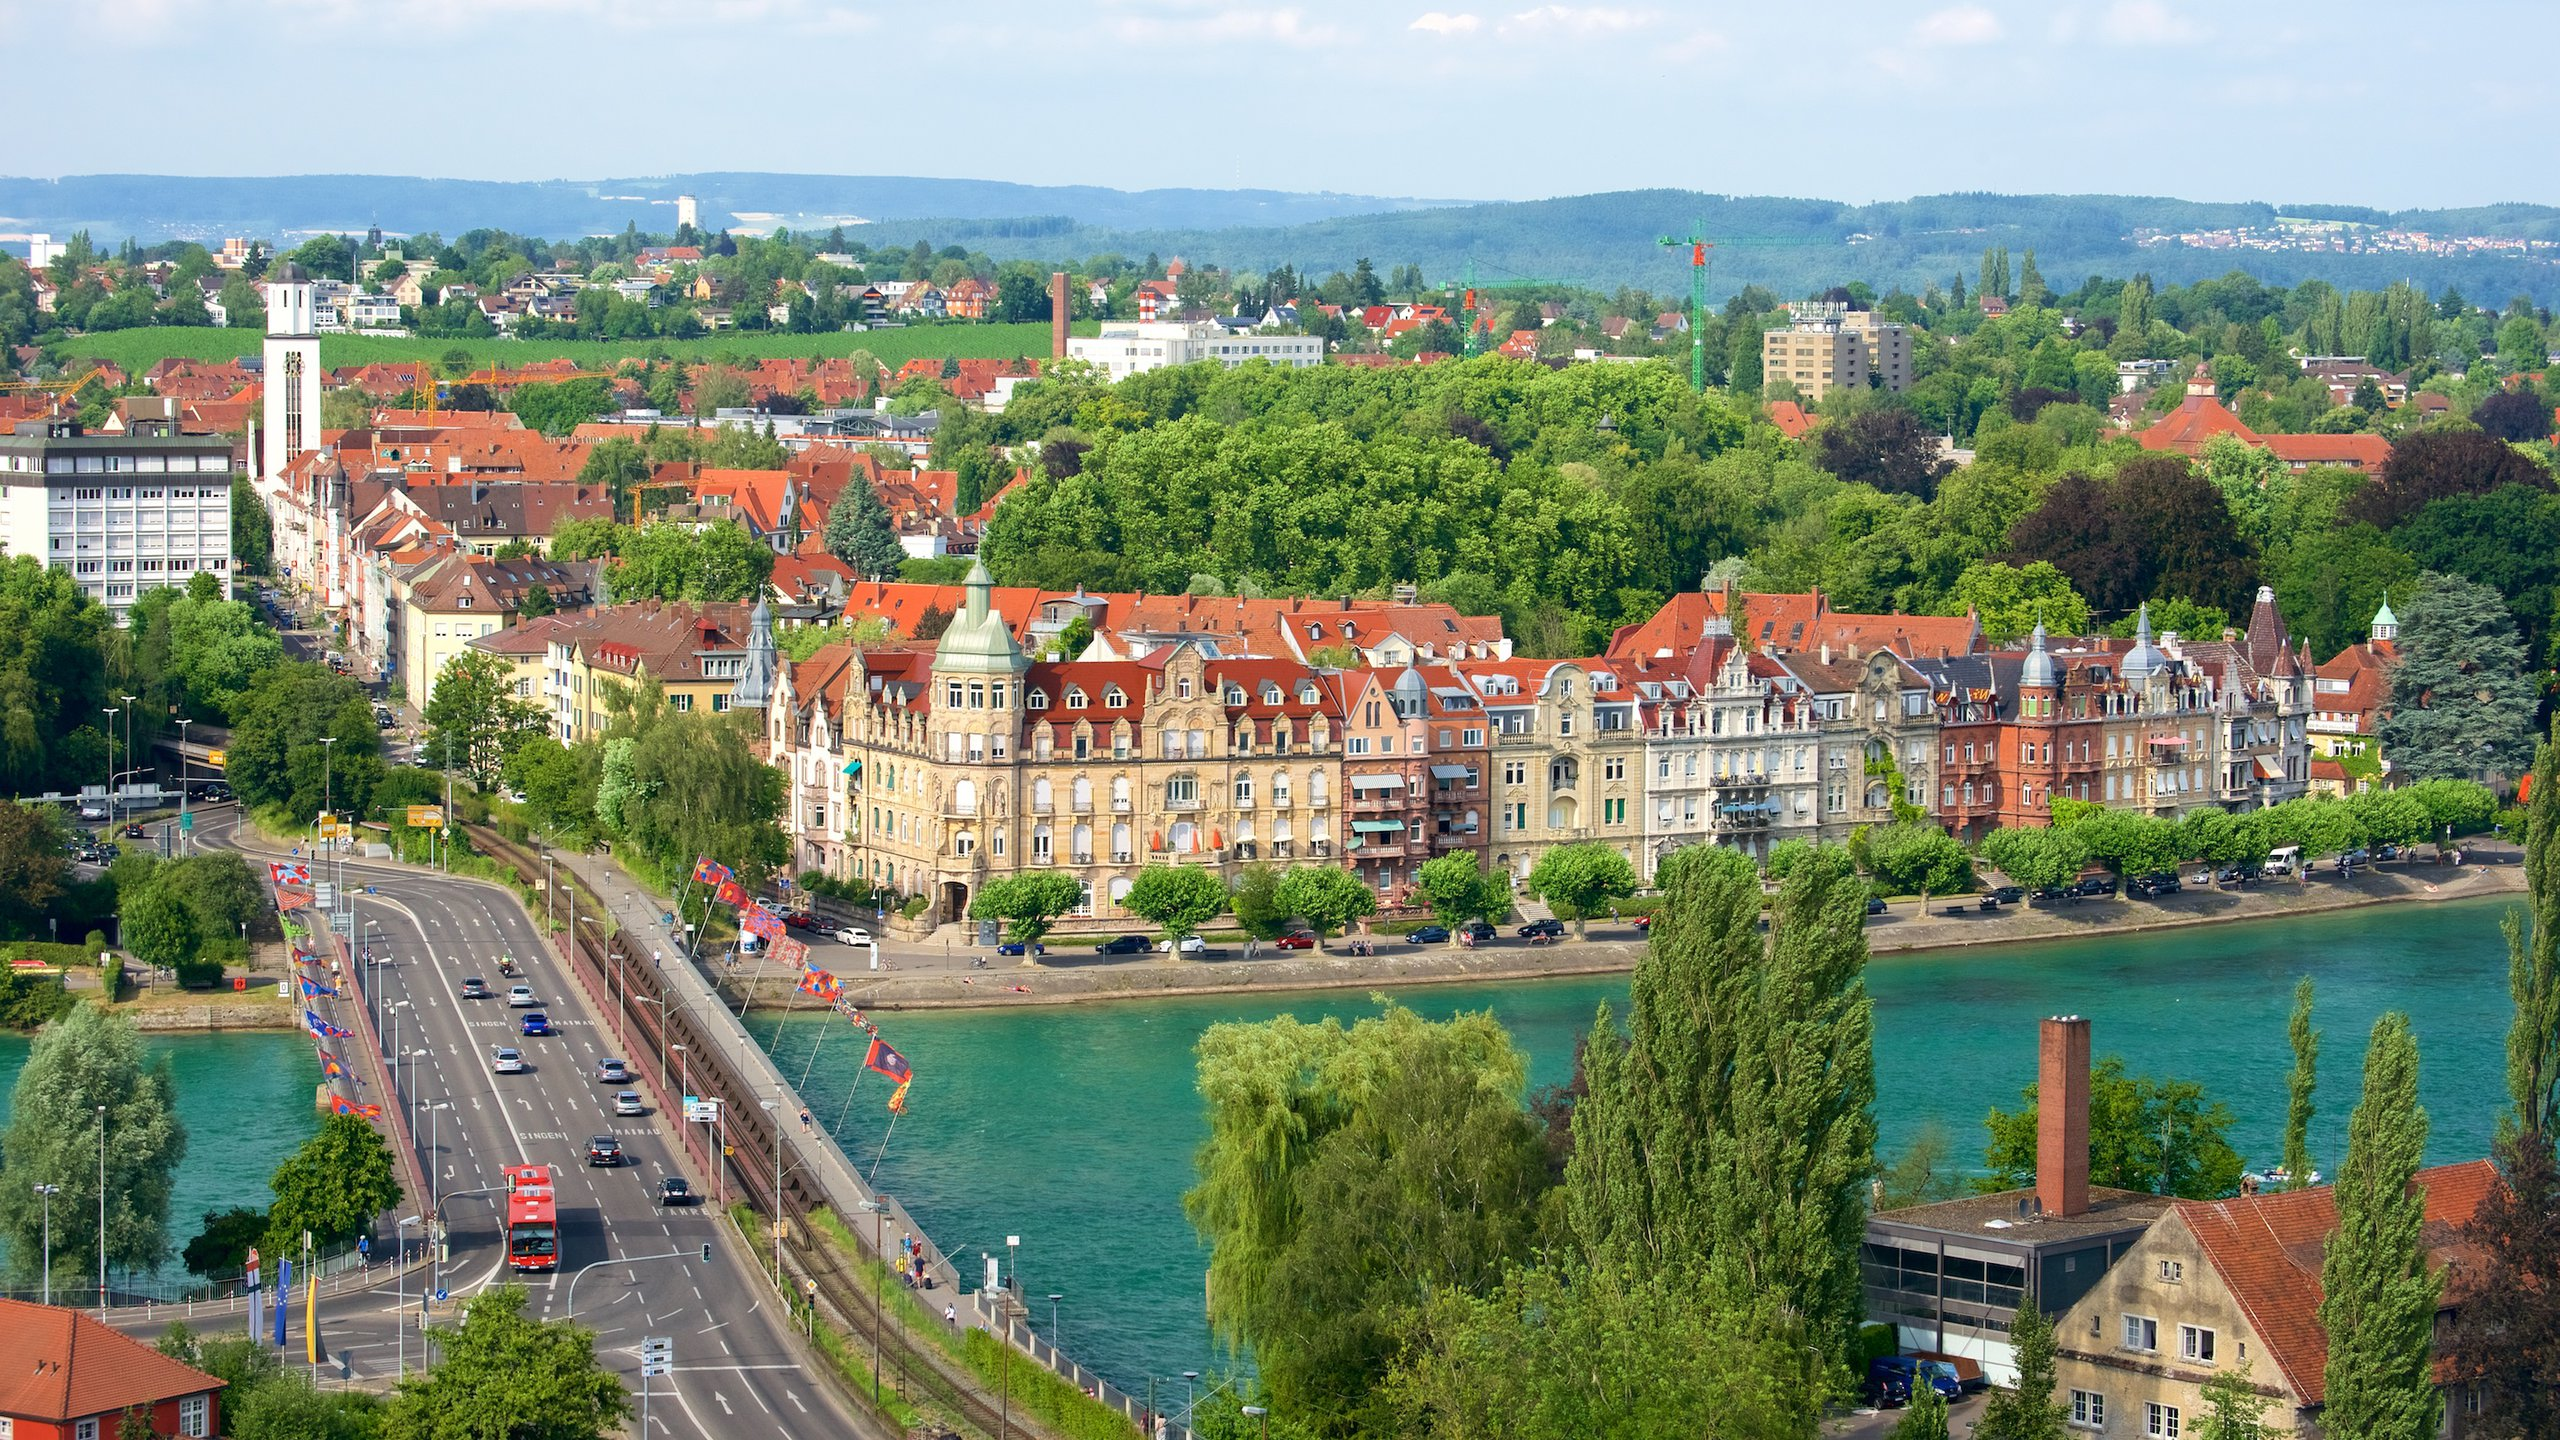 Constance, Germany